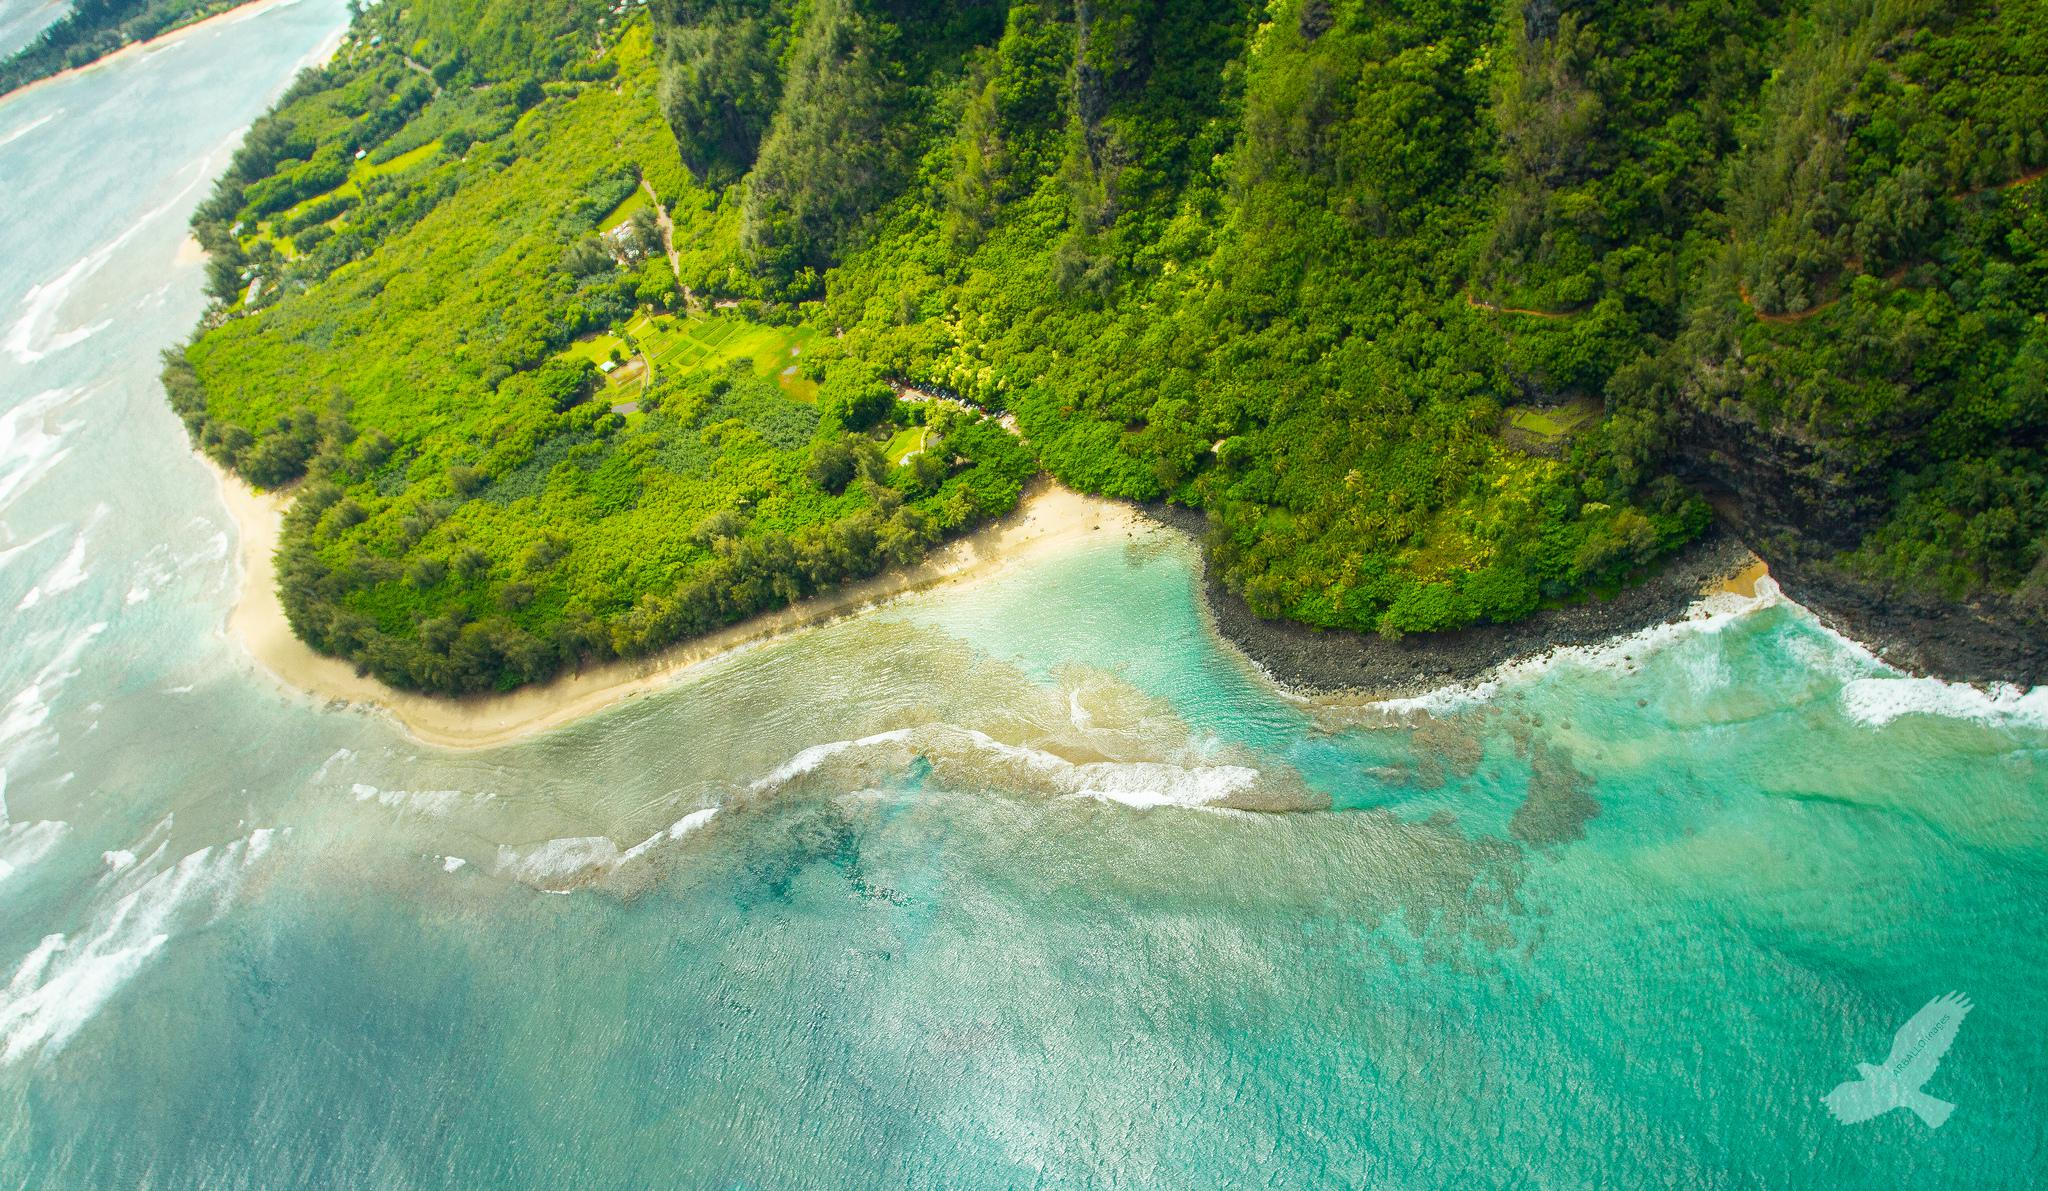 """Kauai North Shore<br/>Photo <a href=""""//creativecommons.org/licences/by-nc/3.0/"""" class=""""cc-small"""" target=""""_blank""""><img typeof=""""foaf:Image"""" class=""""image-style-none"""" src=""""https://i.creativecommons.org/l/by-nc/3.0/80x15.png"""" width=""""80px"""" height=""""15px"""" alt=""""Creative Commons Licence"""" /></a> <a href=""""http://www.flickr.com/photos/91355793@N02/9094763707"""">Christian Arballo</a>"""